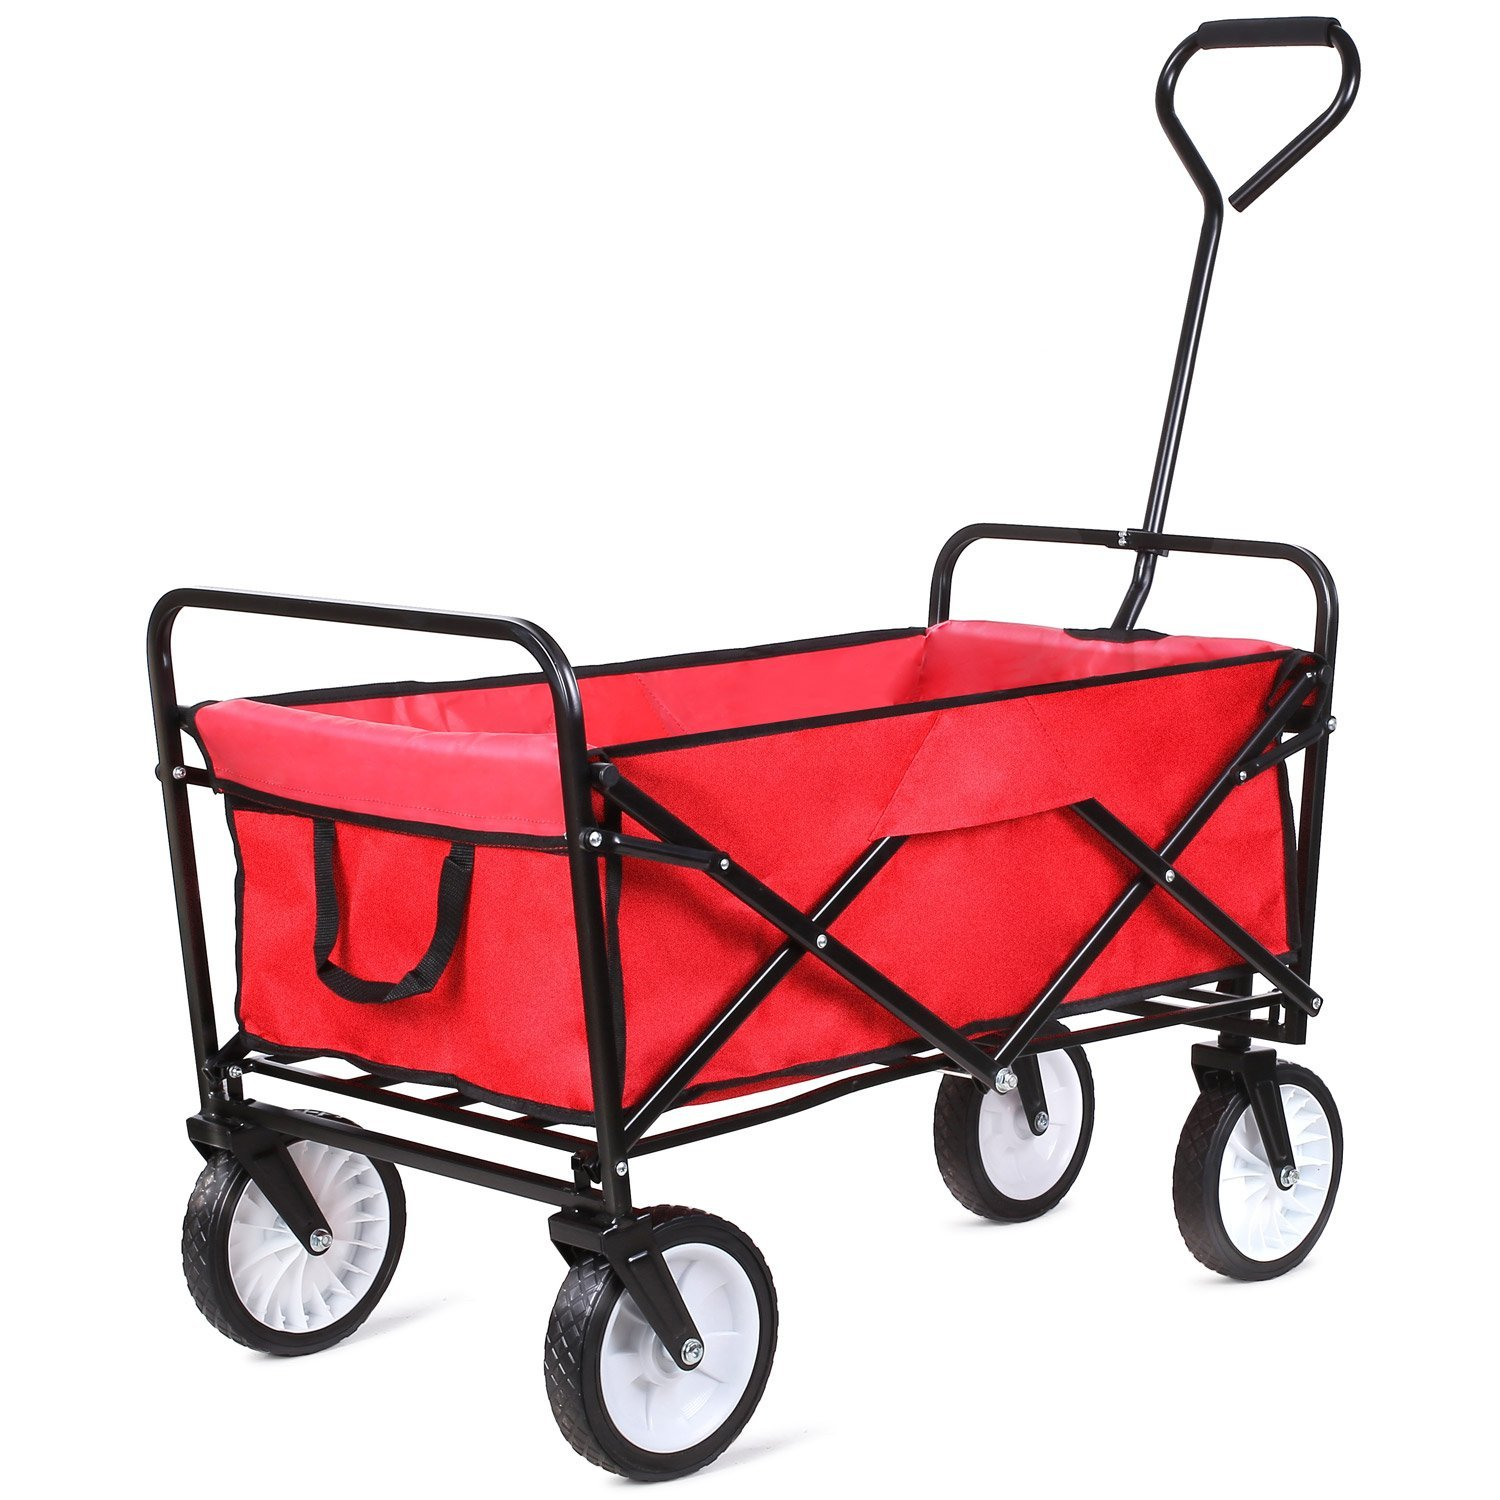 Femor Collapsible Folding Outdoor Utility Wagon [Heavy Duty Garden Cart]-Red